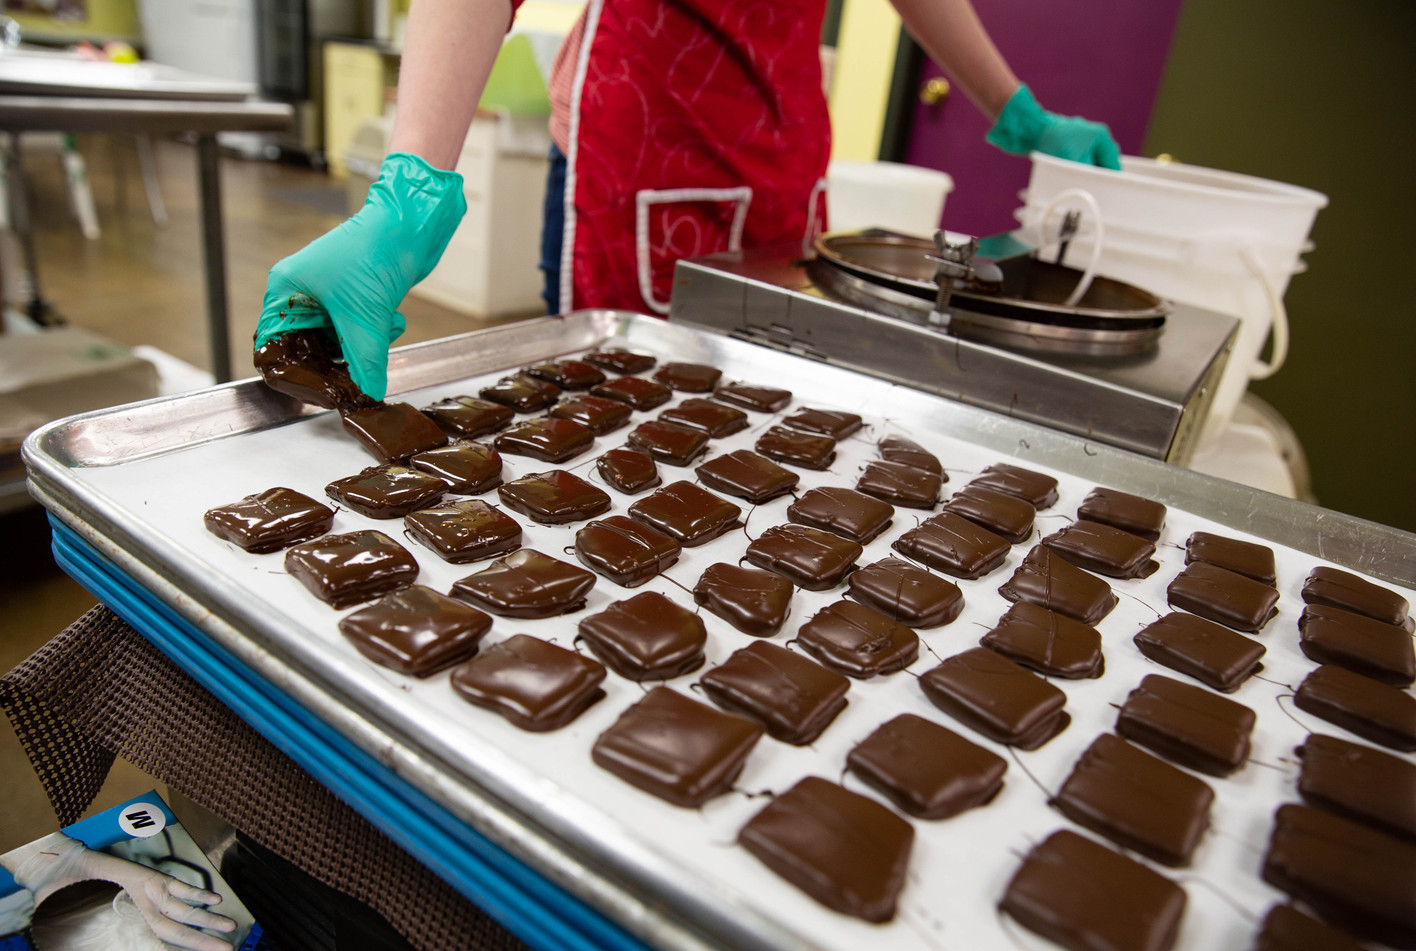 """Watertown Confectionery employee Hal Holdahl makes a tray of chocolate-covered toffee squares she dipped one by one into a bowl of dark chocolate on Wednesday, Jan. 23. Every piece of chocolate the confectionery sells is handmade and handdipped, so no two chocolates are the same. """"It's a lot of work, but it's also a lot of fun,"""" Holdahl said. ©2019 Grace Ramey"""